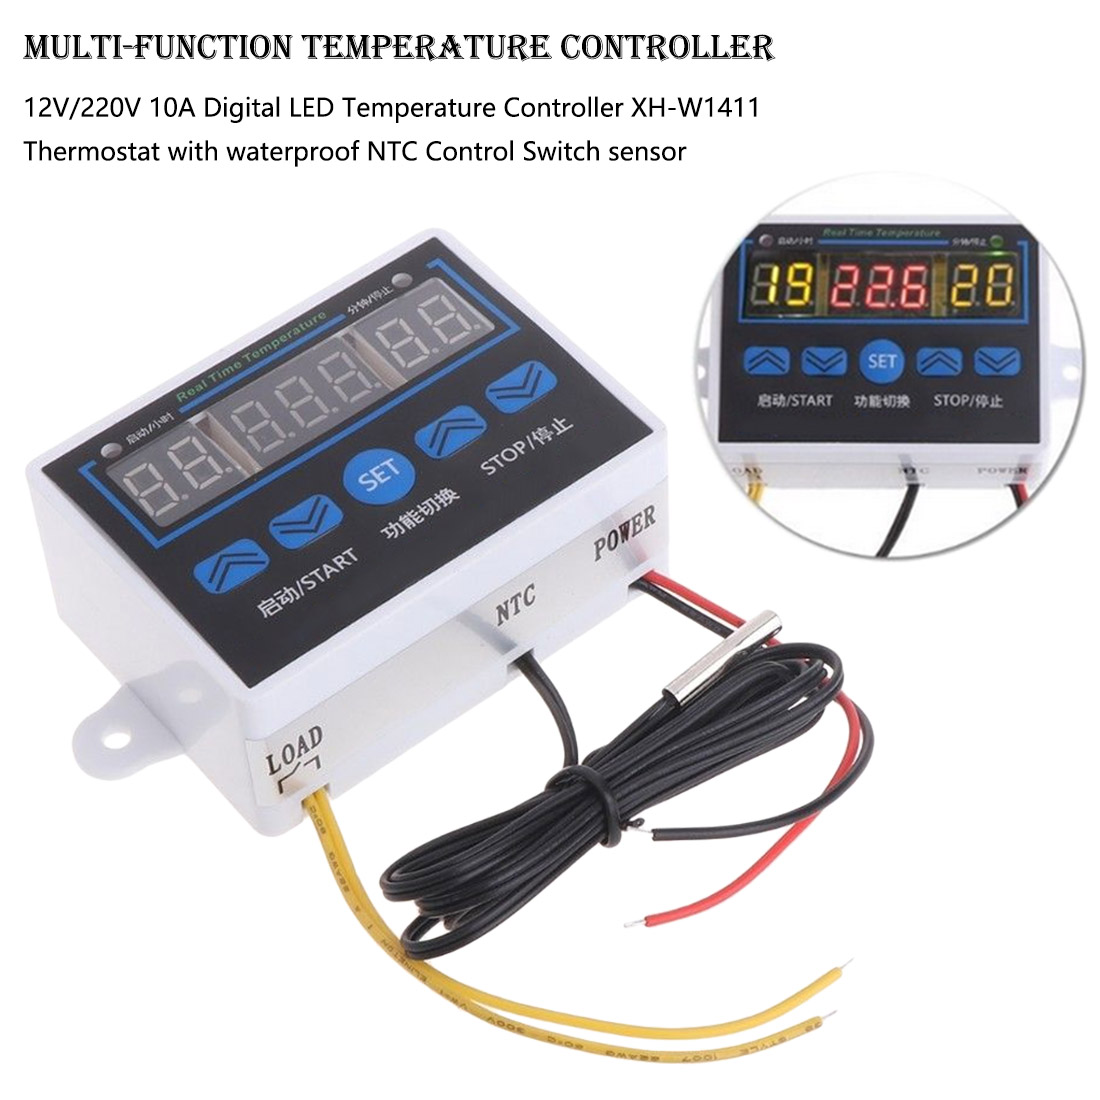 Digital Thermostat Temperature Controller Temperature Control Switch -19~99 with Waterproof NTC Sensor12V 220V 10A